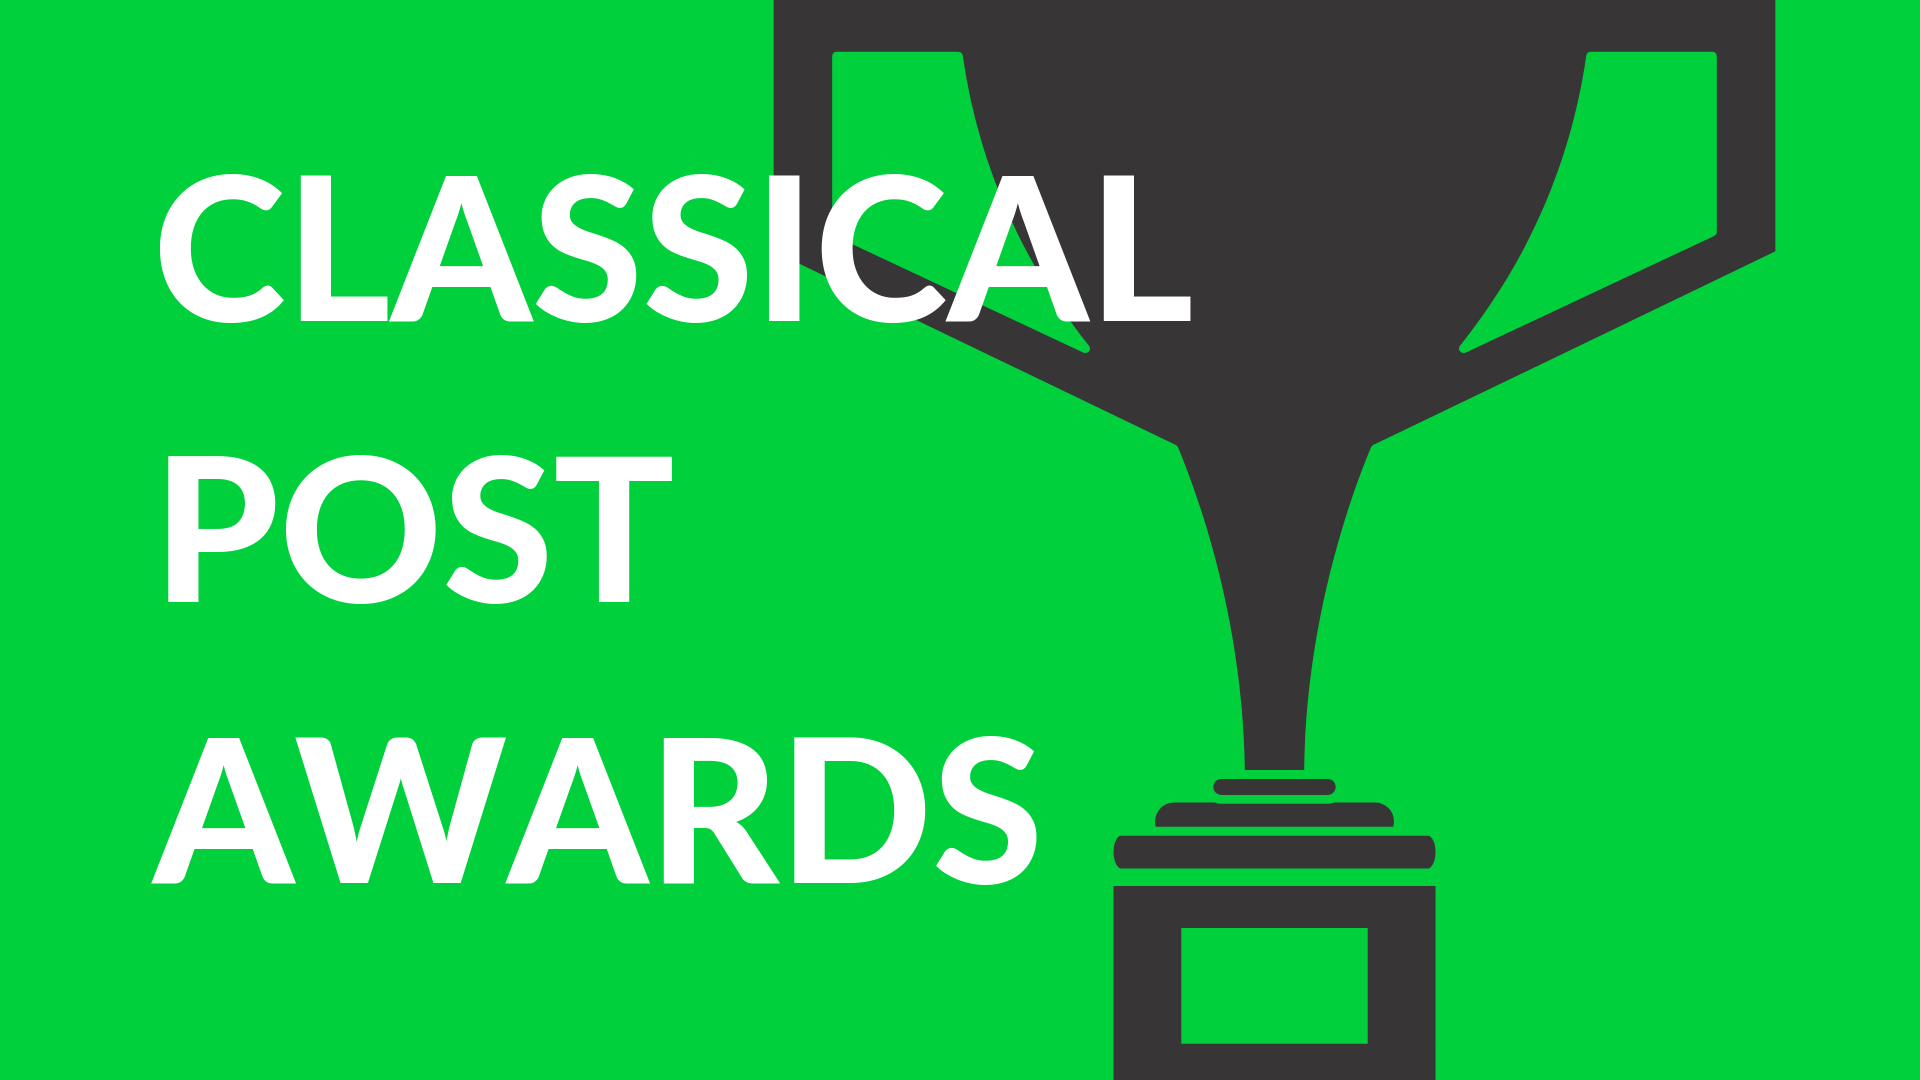 Classical Post Awards